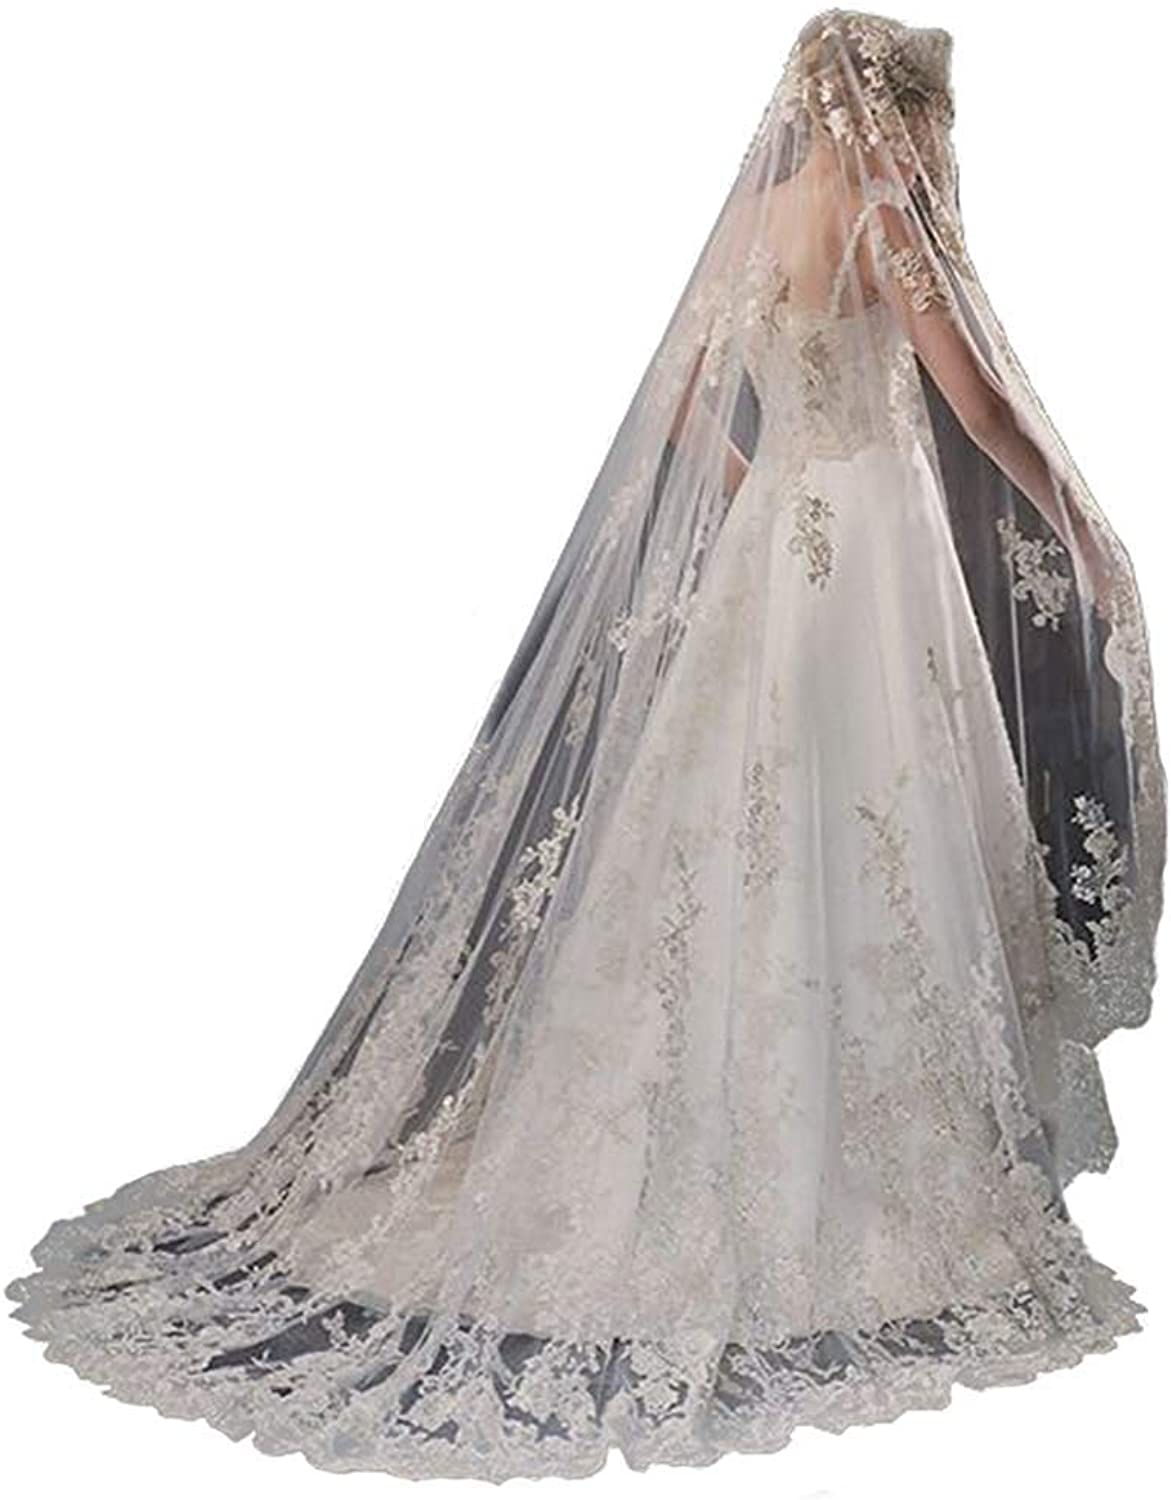 EllieHouse Women's Wedding Veils With Appliques Lace Edge Veils for Bride Free Comb S90